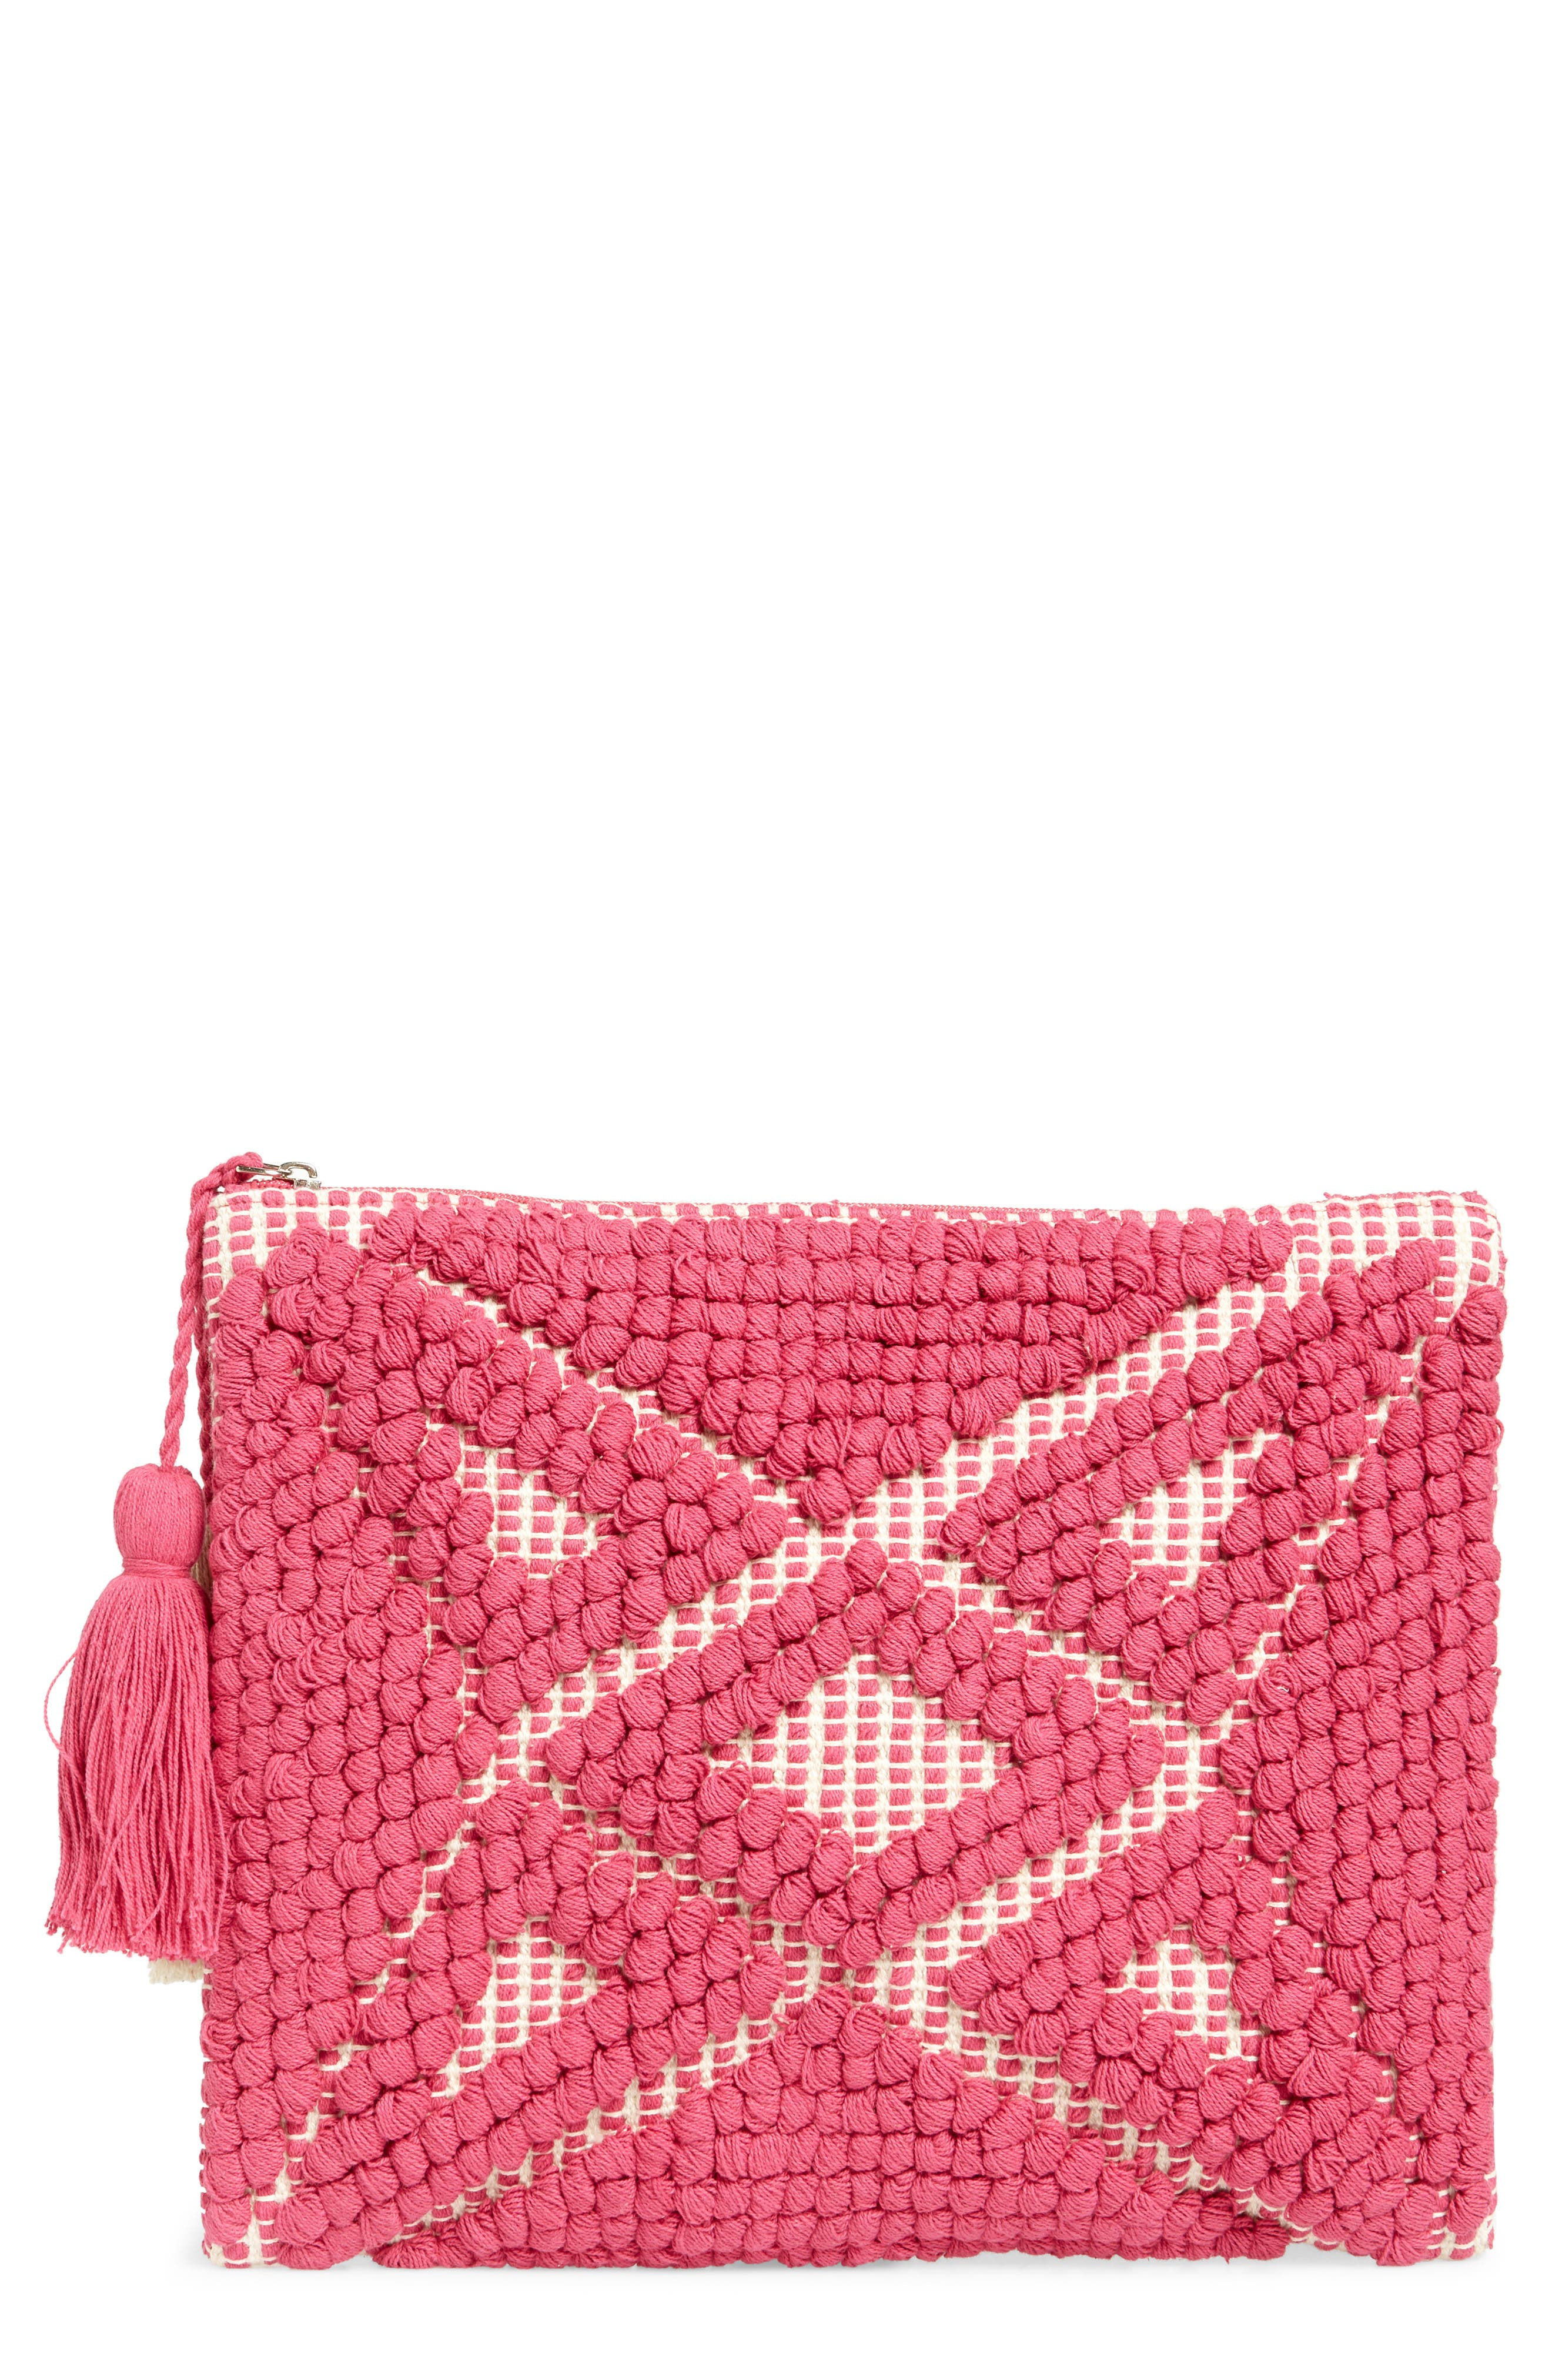 Palisades Tasseled Woven Clutch,                         Main,                         color, 655